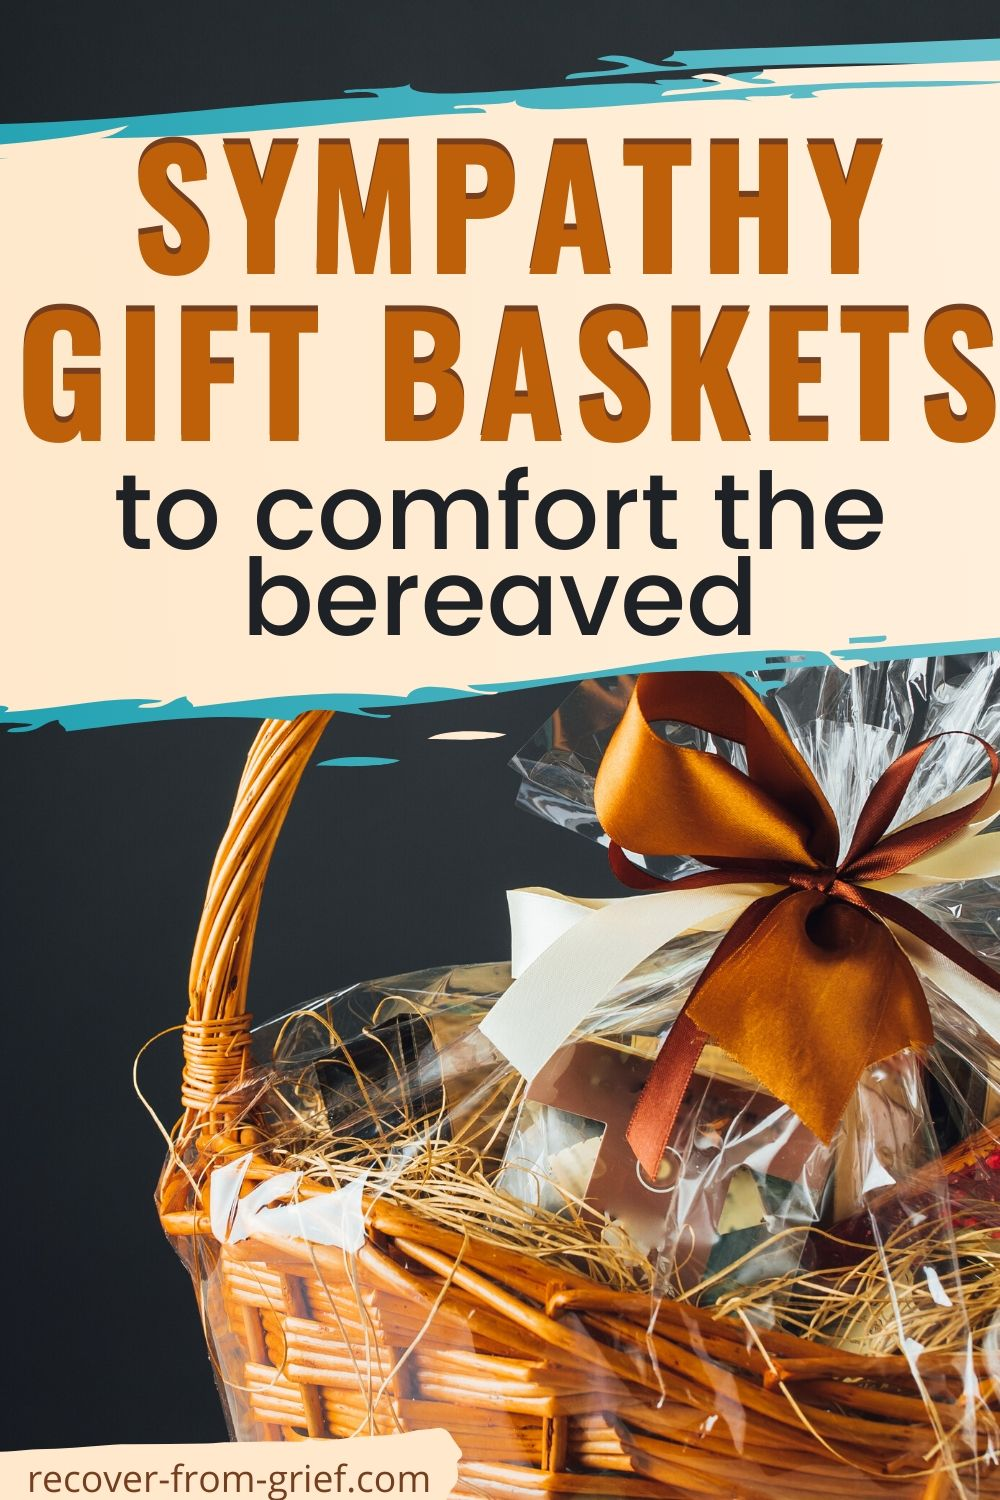 Sympathy gift baskets to comfort the bereaved